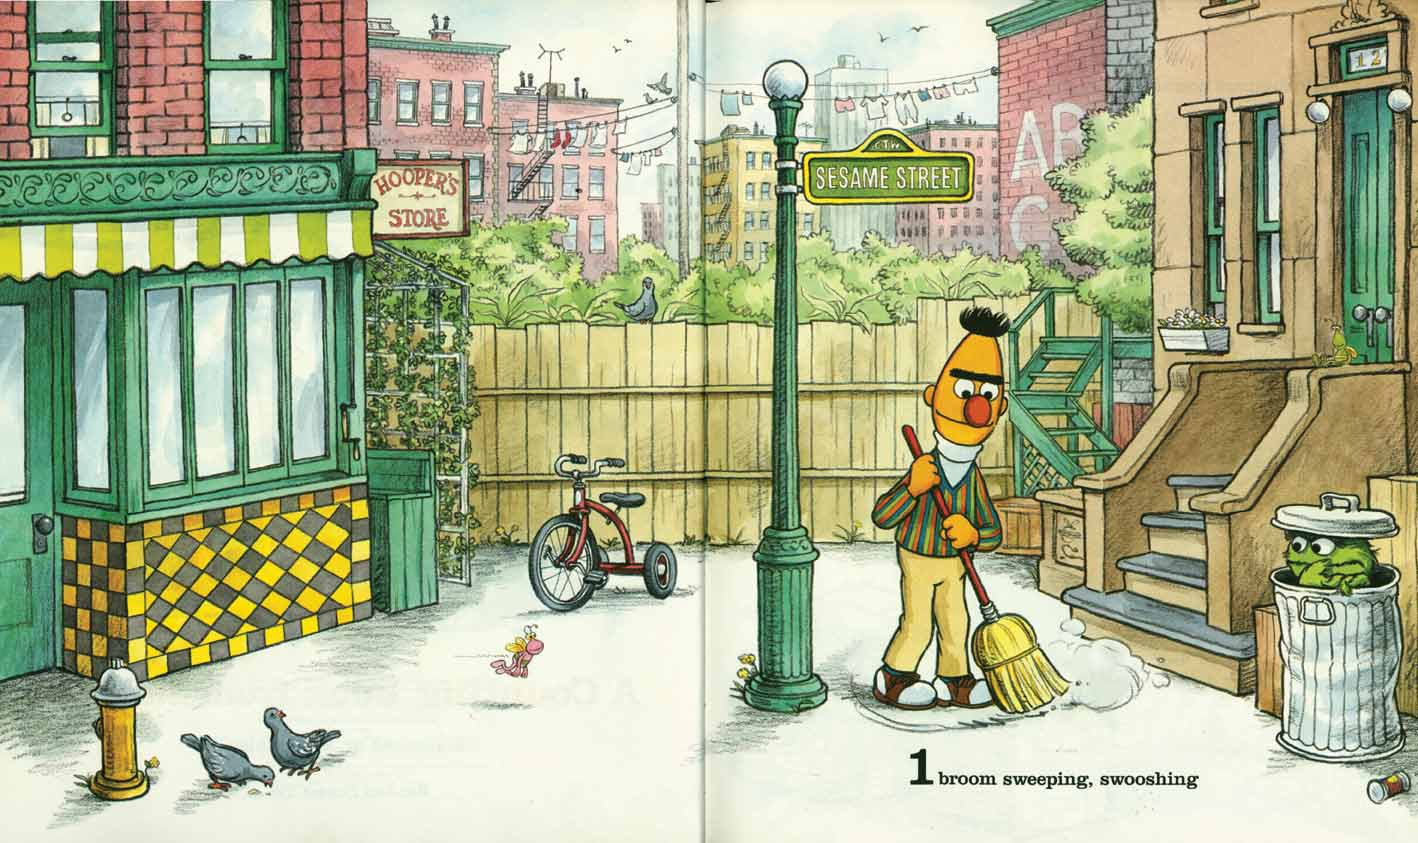 Sesame Street 123 pages 4-5